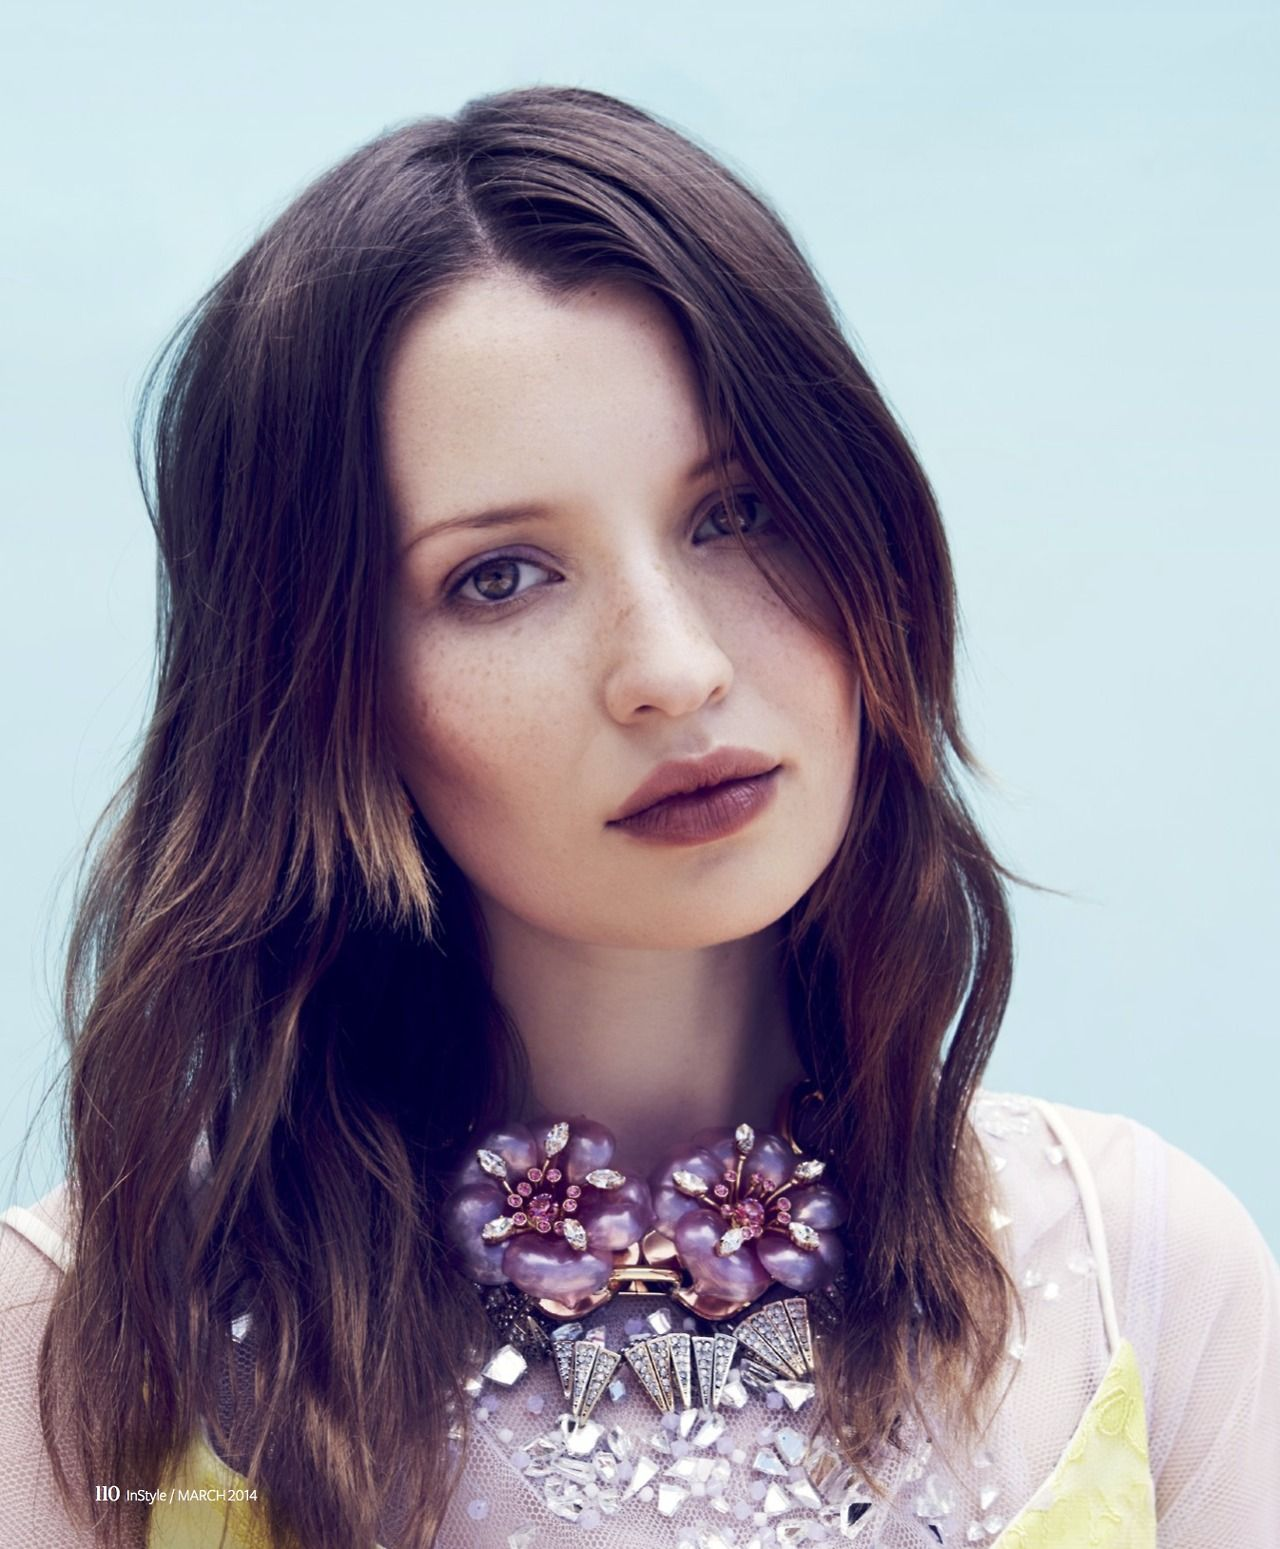 Emily Browning earned a  million dollar salary, leaving the net worth at 8 million in 2017